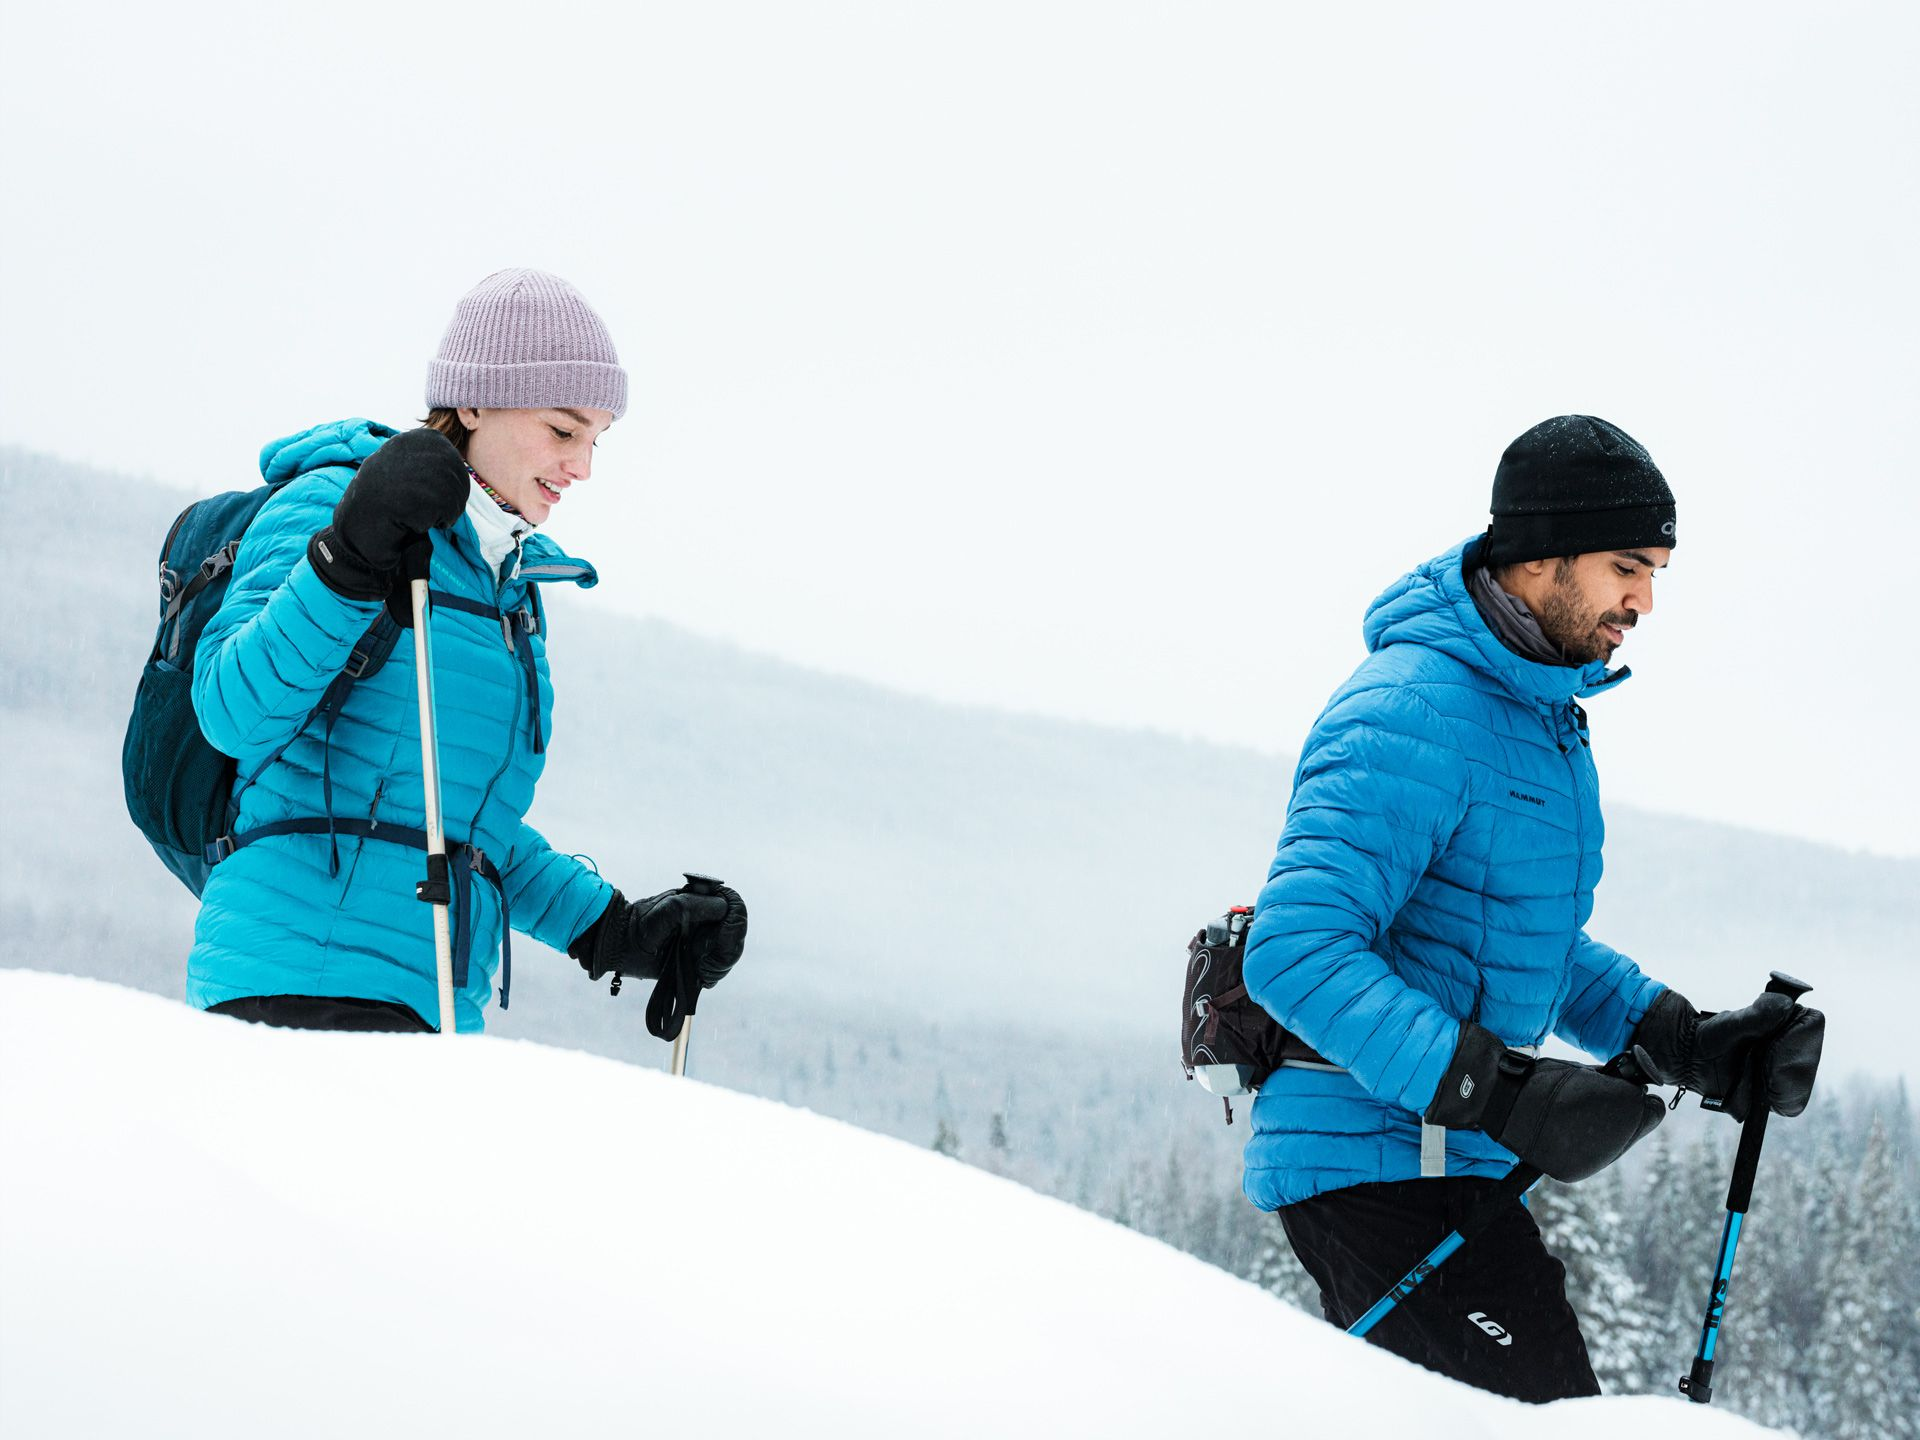 Sail sports gear photographed by Alexi Hobbs of two people treaking in nature in the snow both wearing bright blue jackets